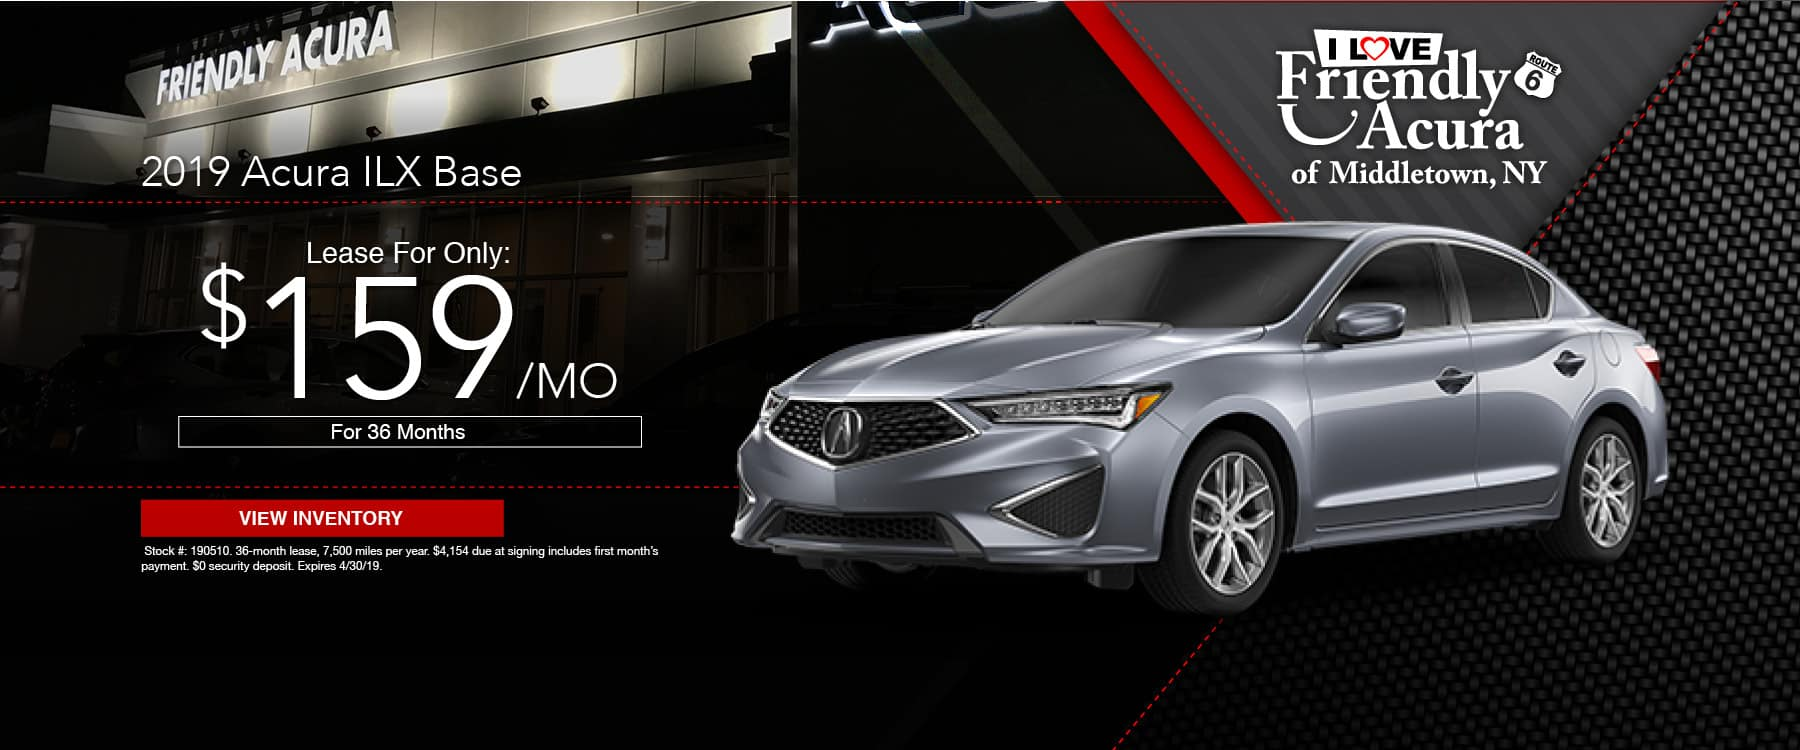 Acura Dealer In Middletown Ny Friendly Acura Of Middletown